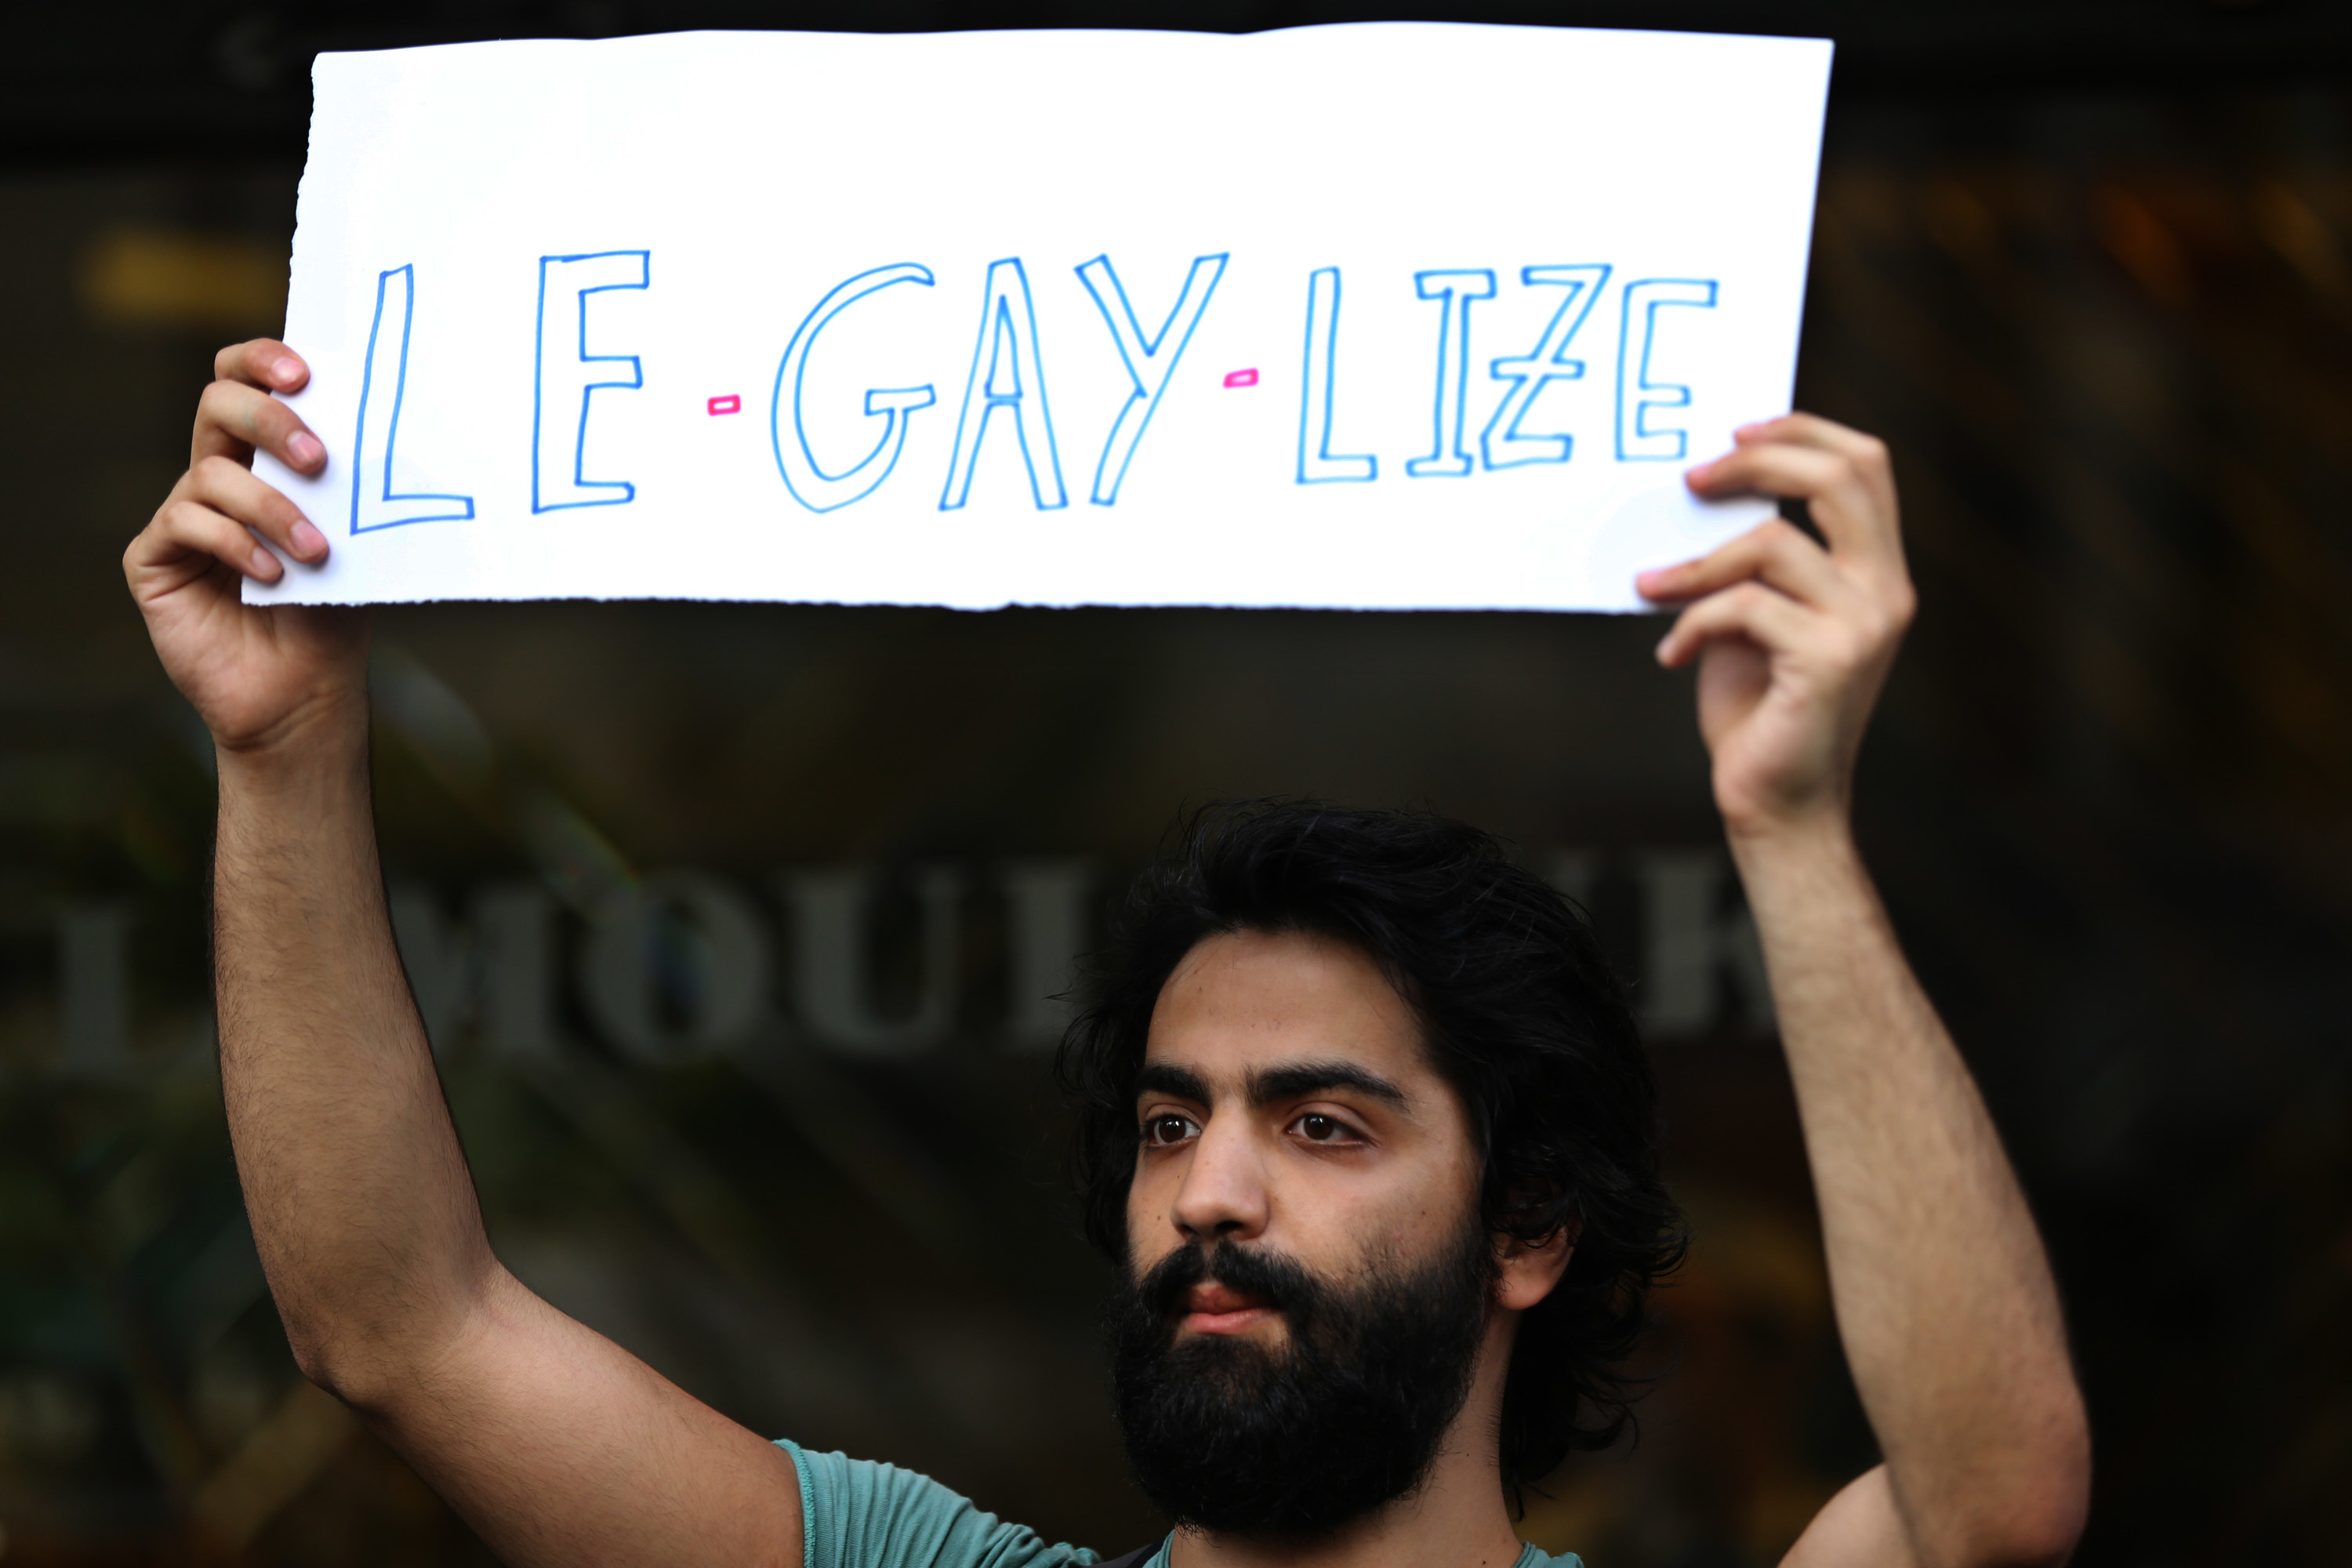 """A protester holds up a sign that says """"Le-gay-lize"""""""